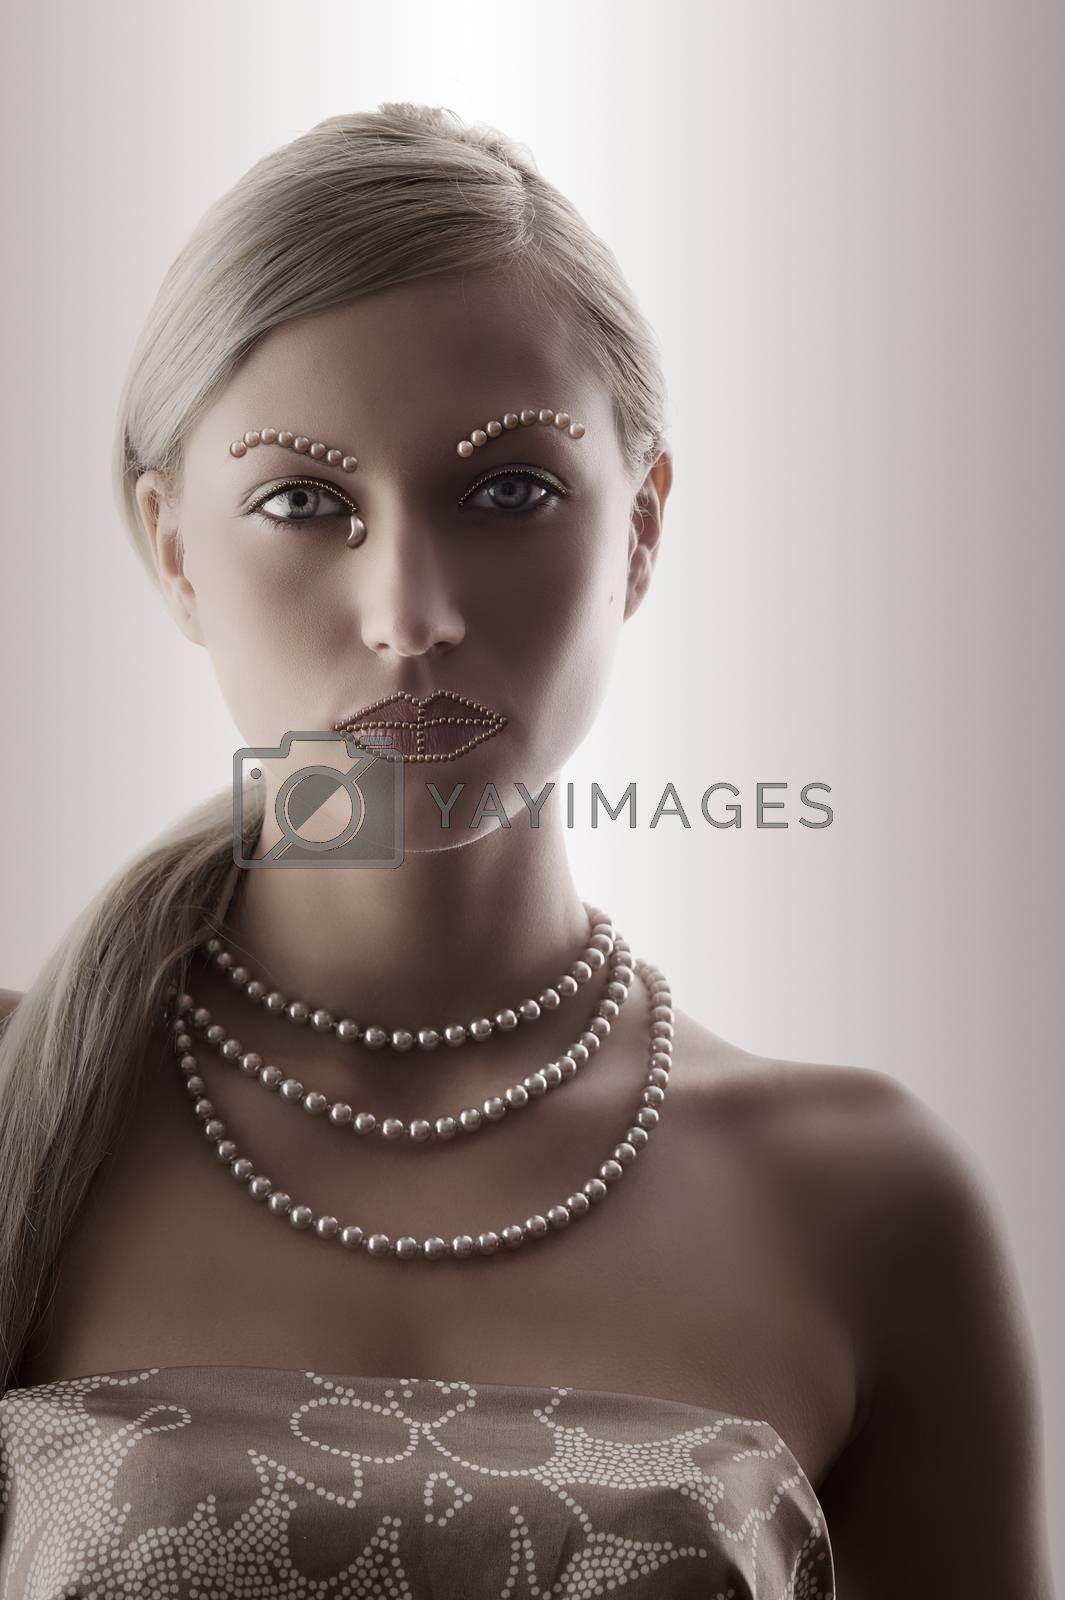 Royalty free image of portrait of blond girl by fotoCD